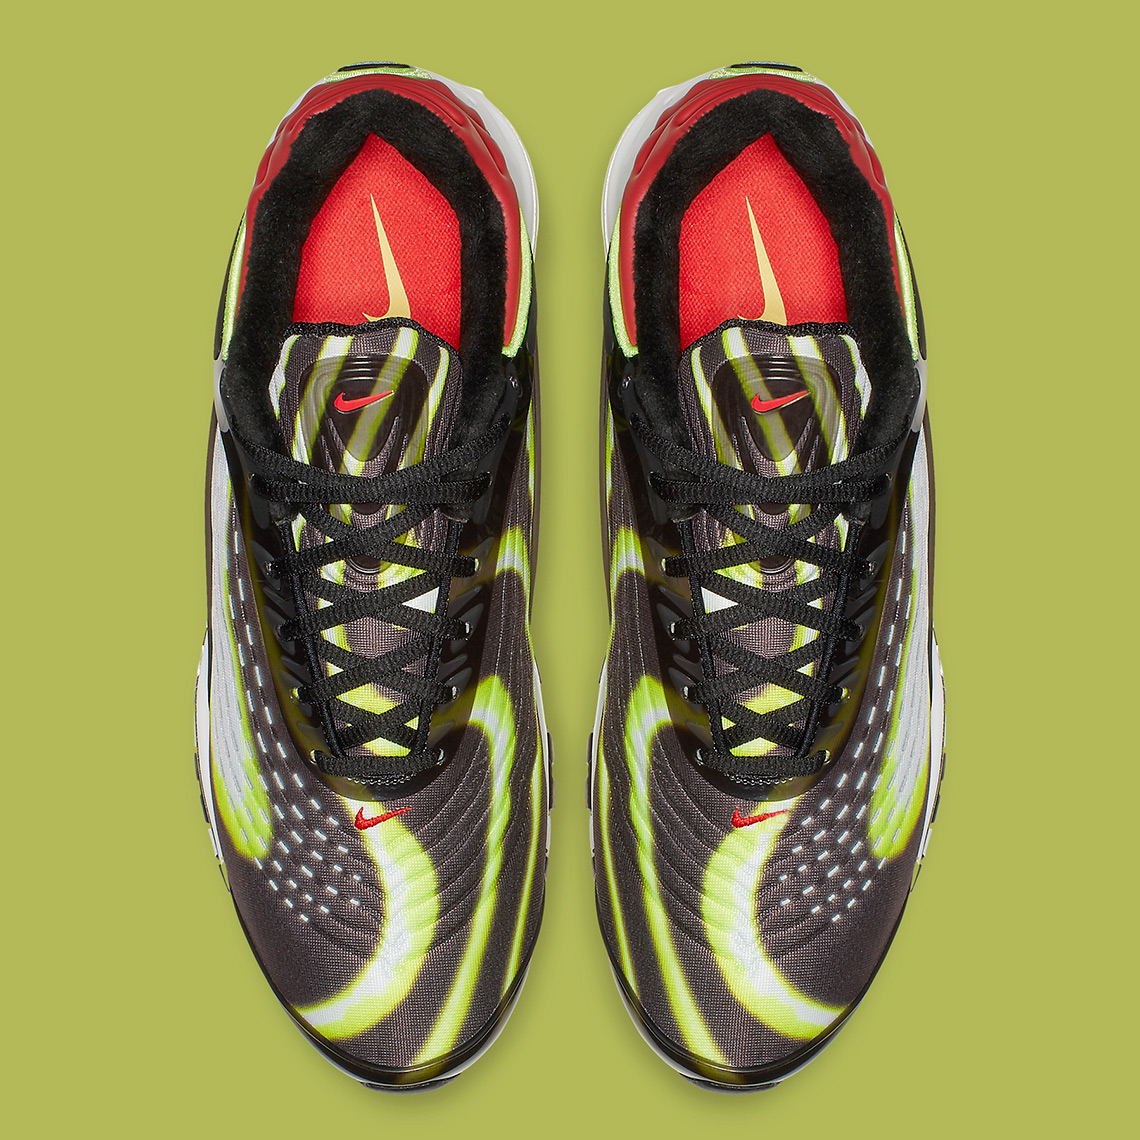 53c8541375 Nike Air Max Deluxe Habanero Red AJ7831-003 Release Info ...